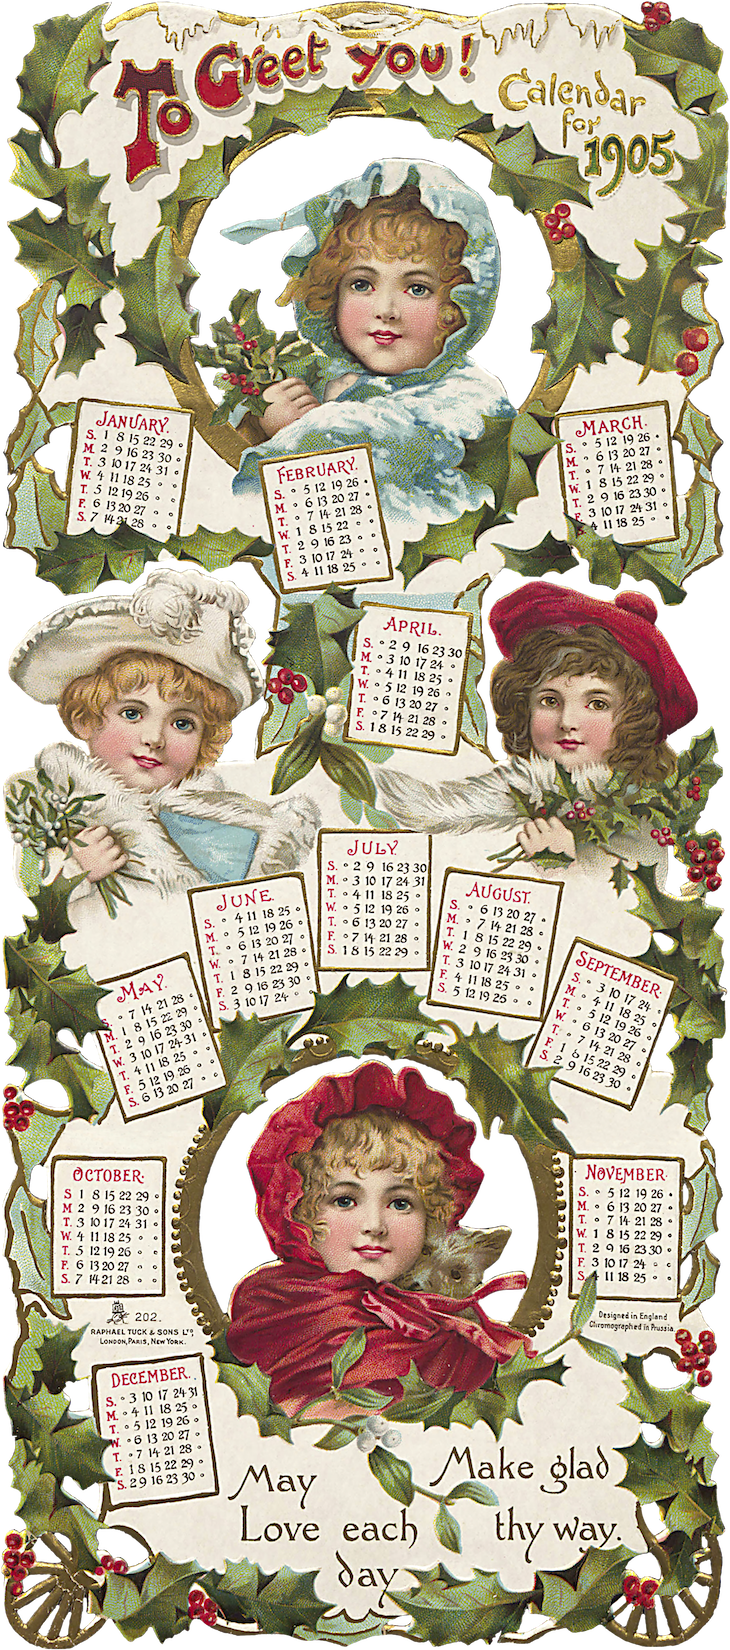 Wings of Whimsy: To Greet You Christmas Calendar 1905 #vintage #ephemera #freebie #printable #calendar